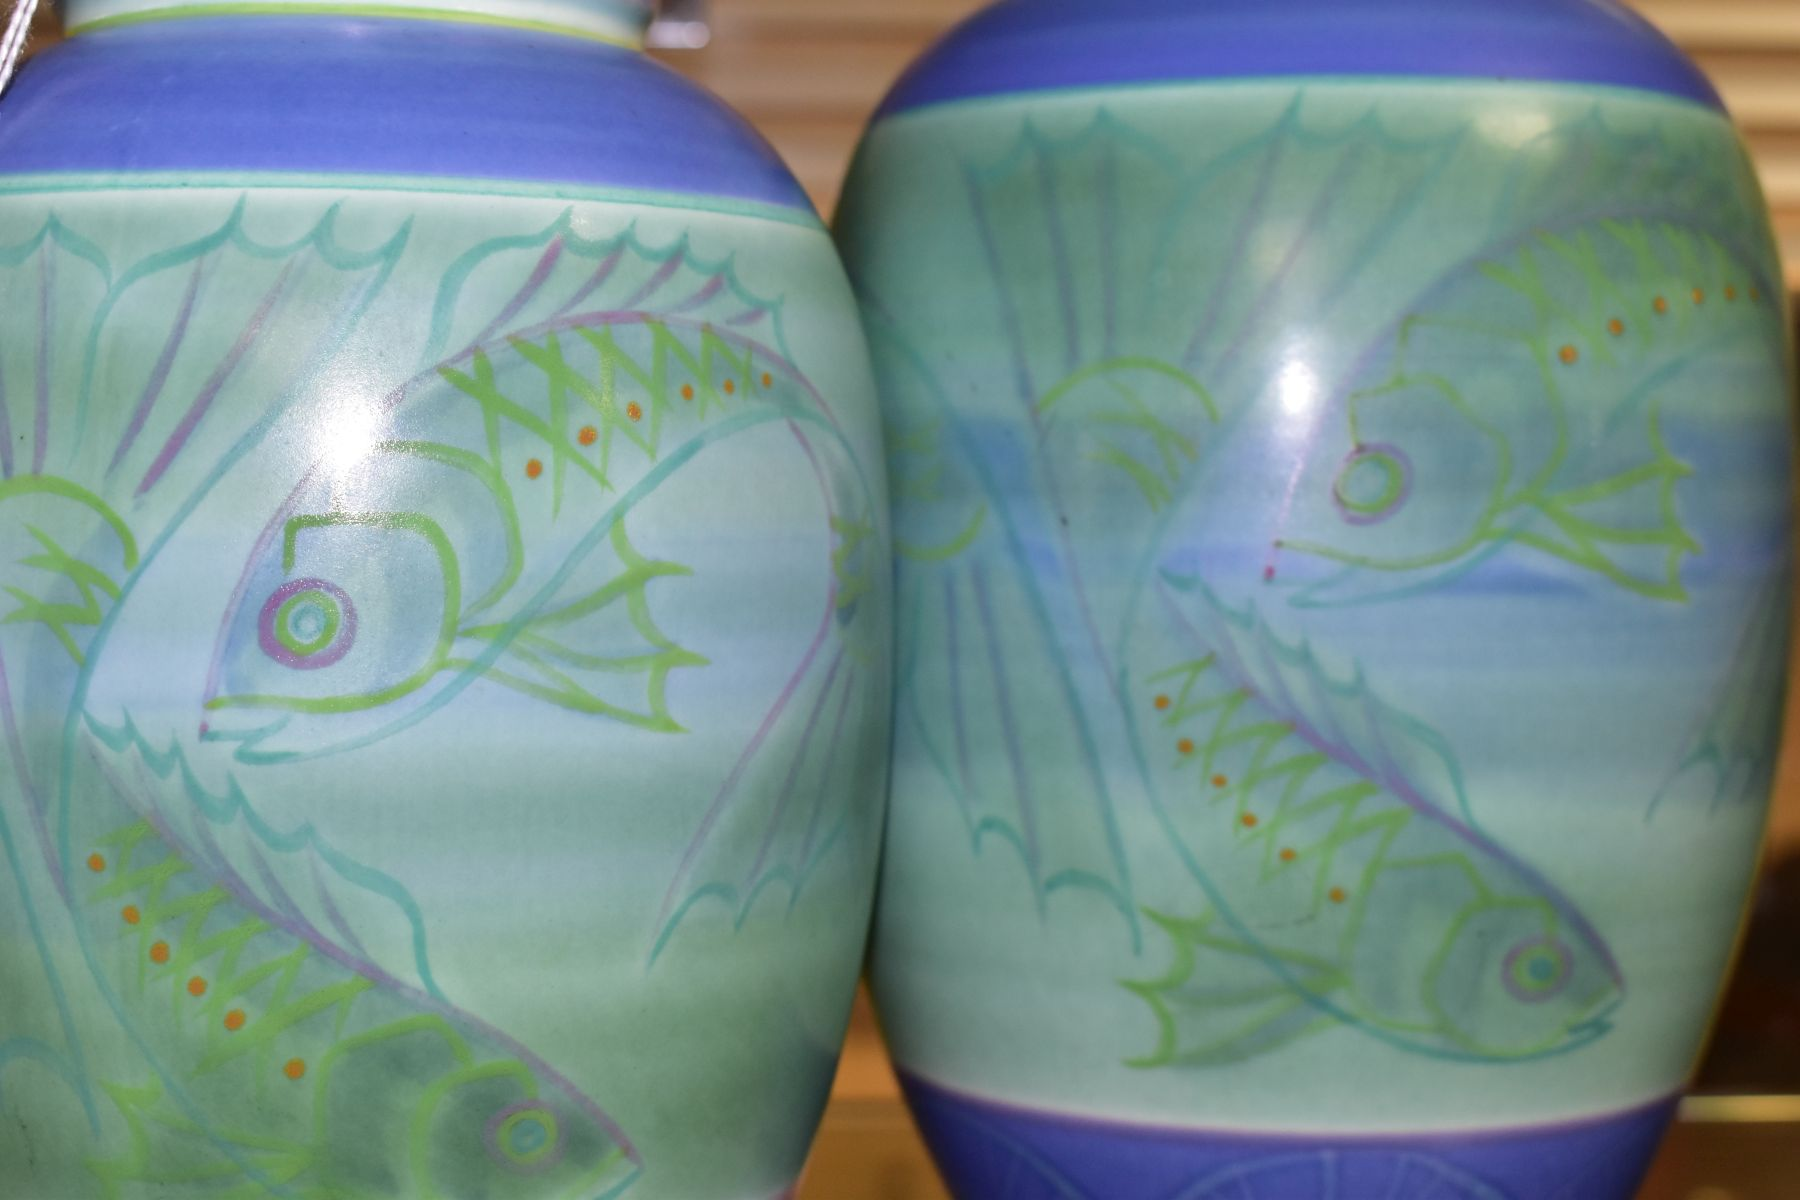 A POOLE STUDIO SALLY TUFFIN BALUSTER VASE AND MATCHING JAR, the baluster vase handpainted with bands - Image 7 of 7